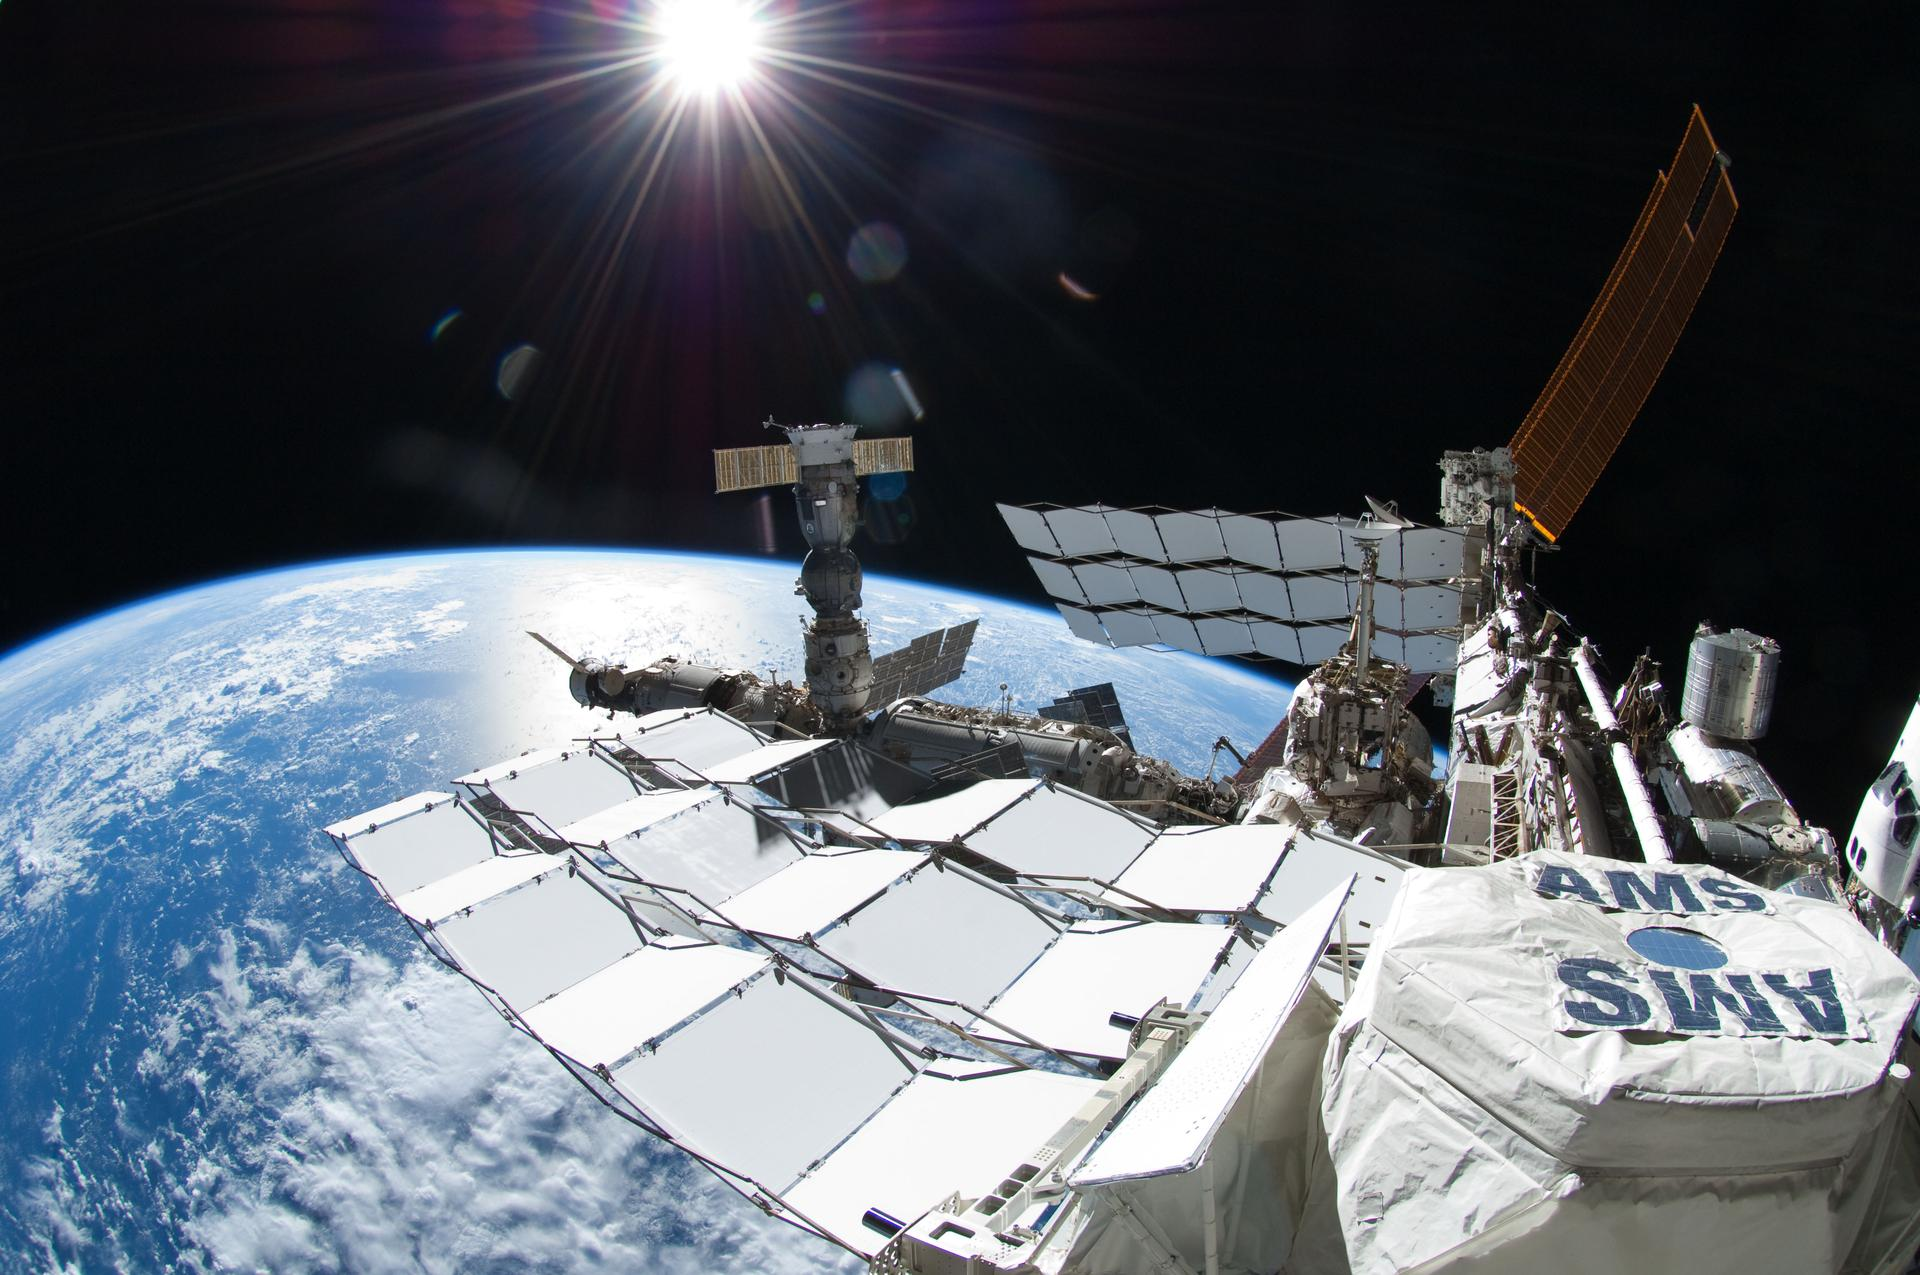 Watch Live Now! Astronauts Tackling Tough Repair Spacewalk at Space Station